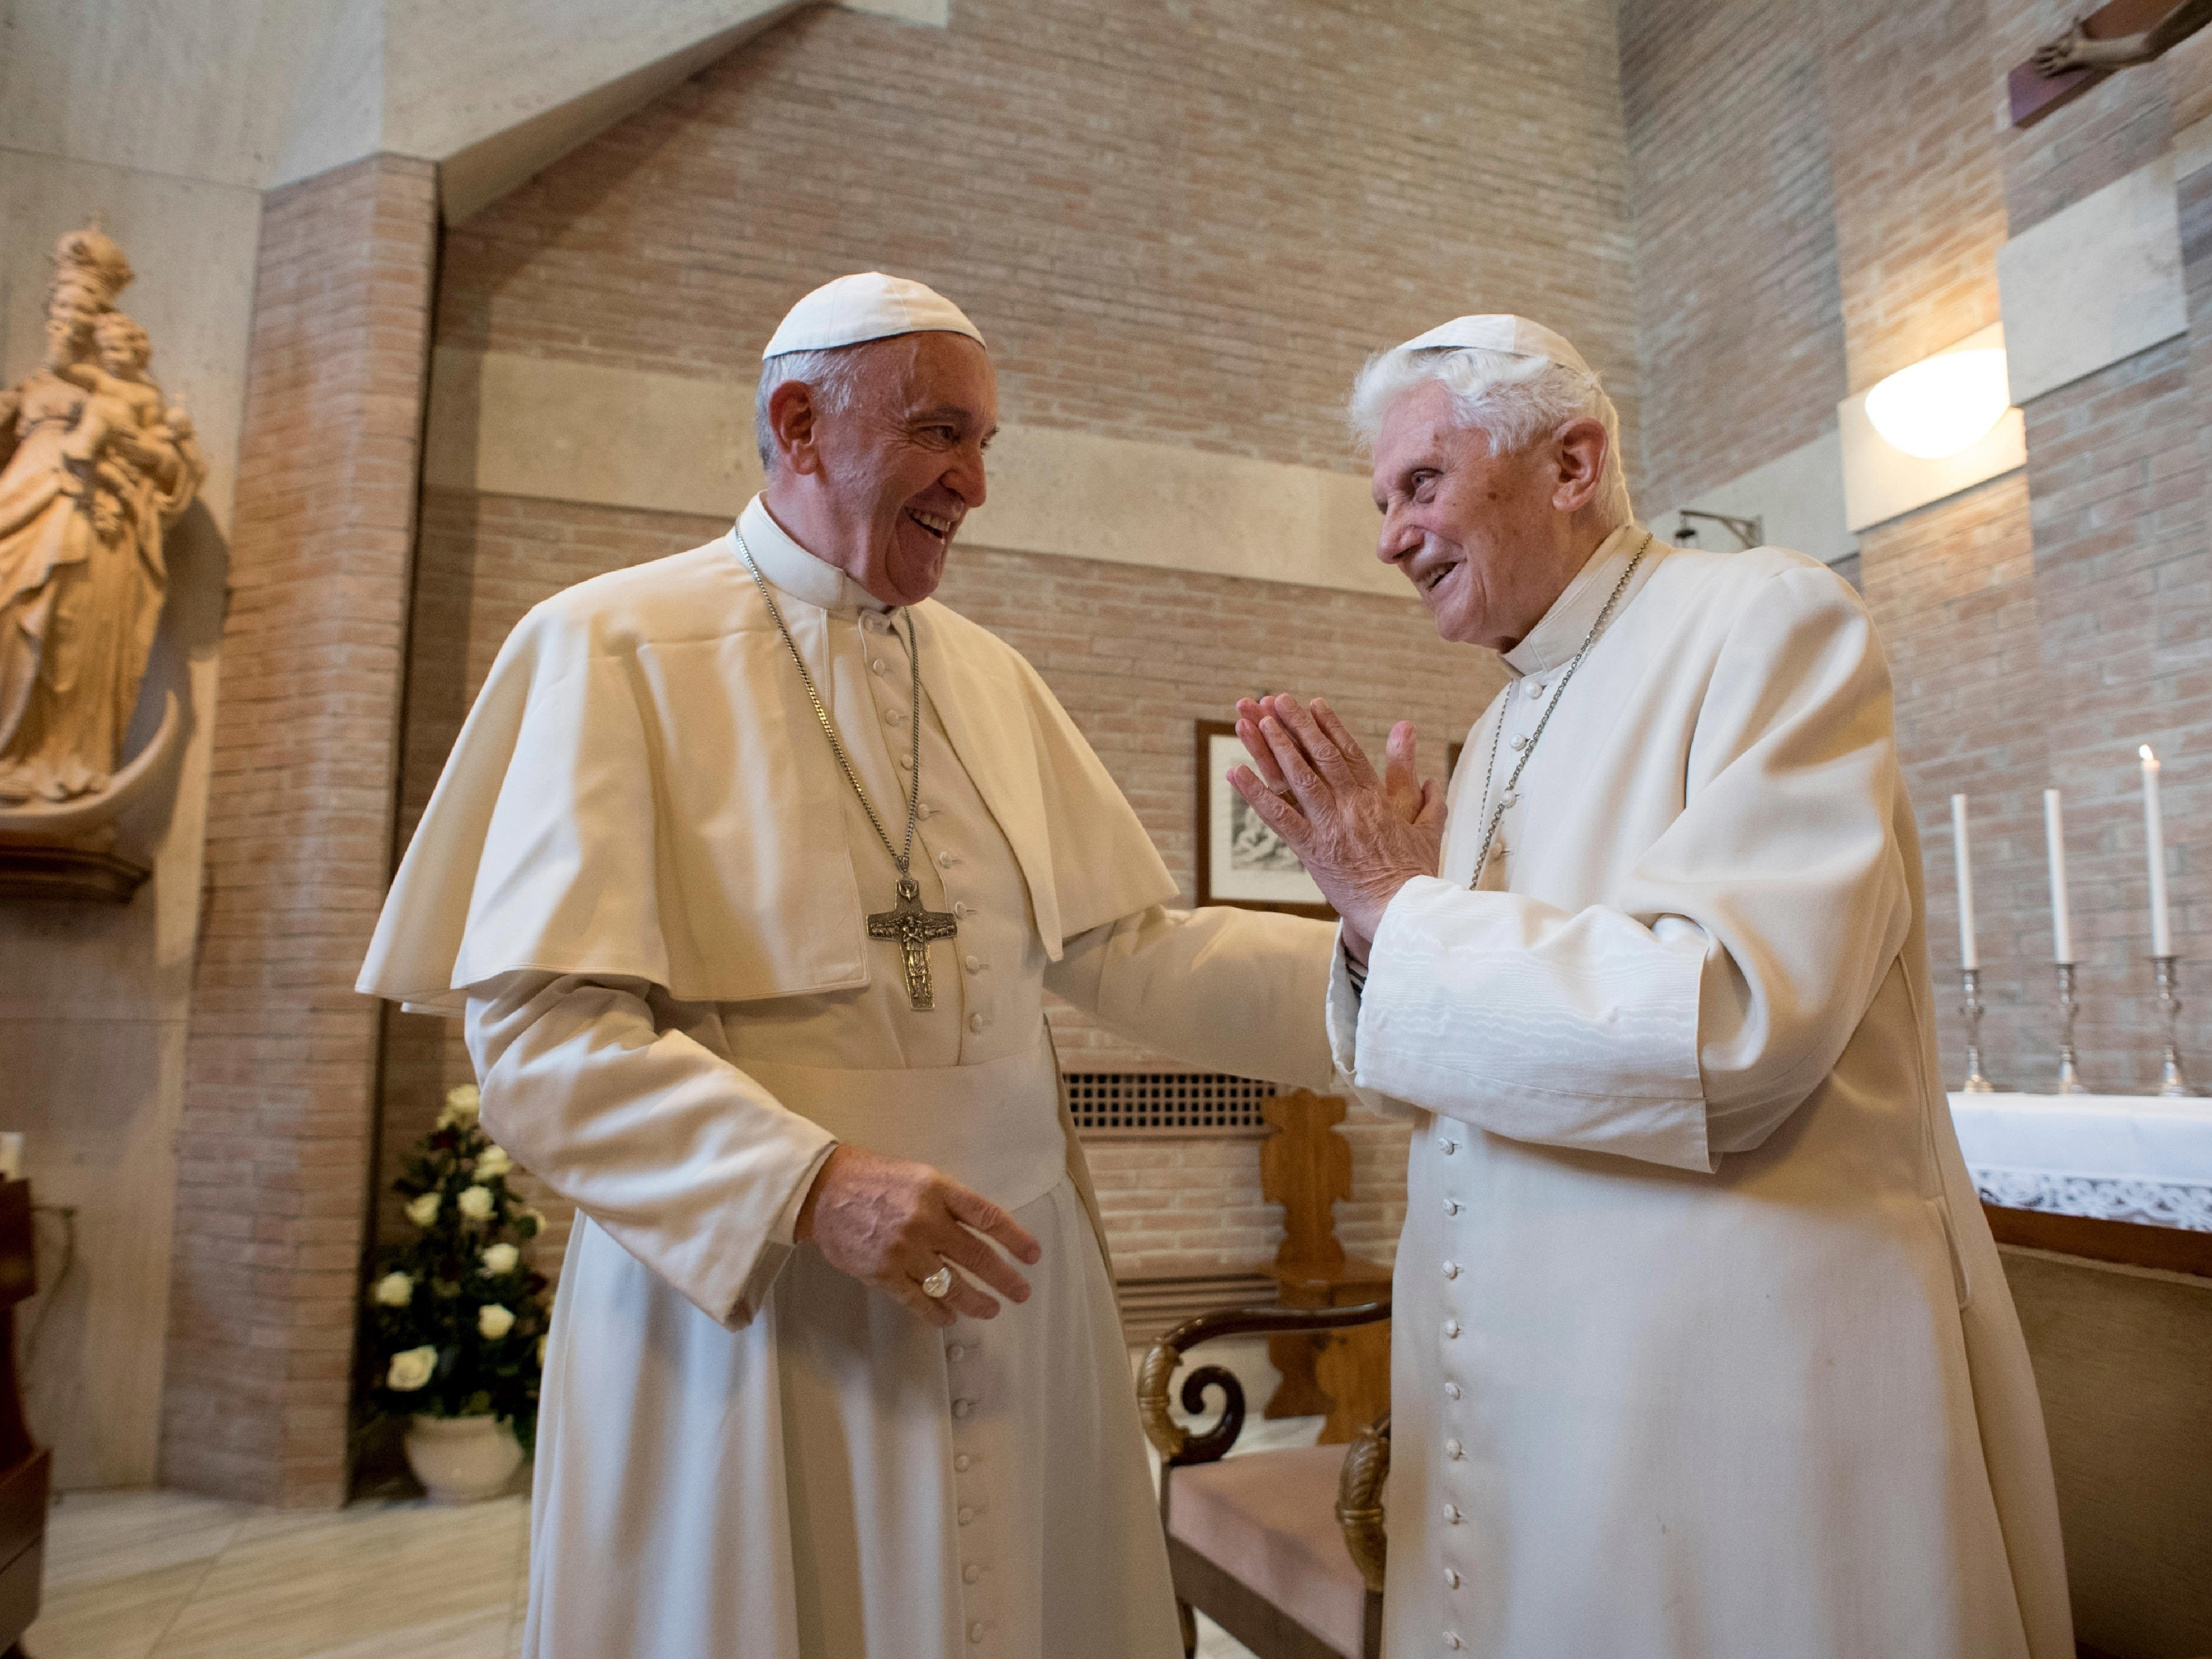 In New Book, Retired Pope Benedict Breaks Silence To Speak Out On Priestly Celibacy